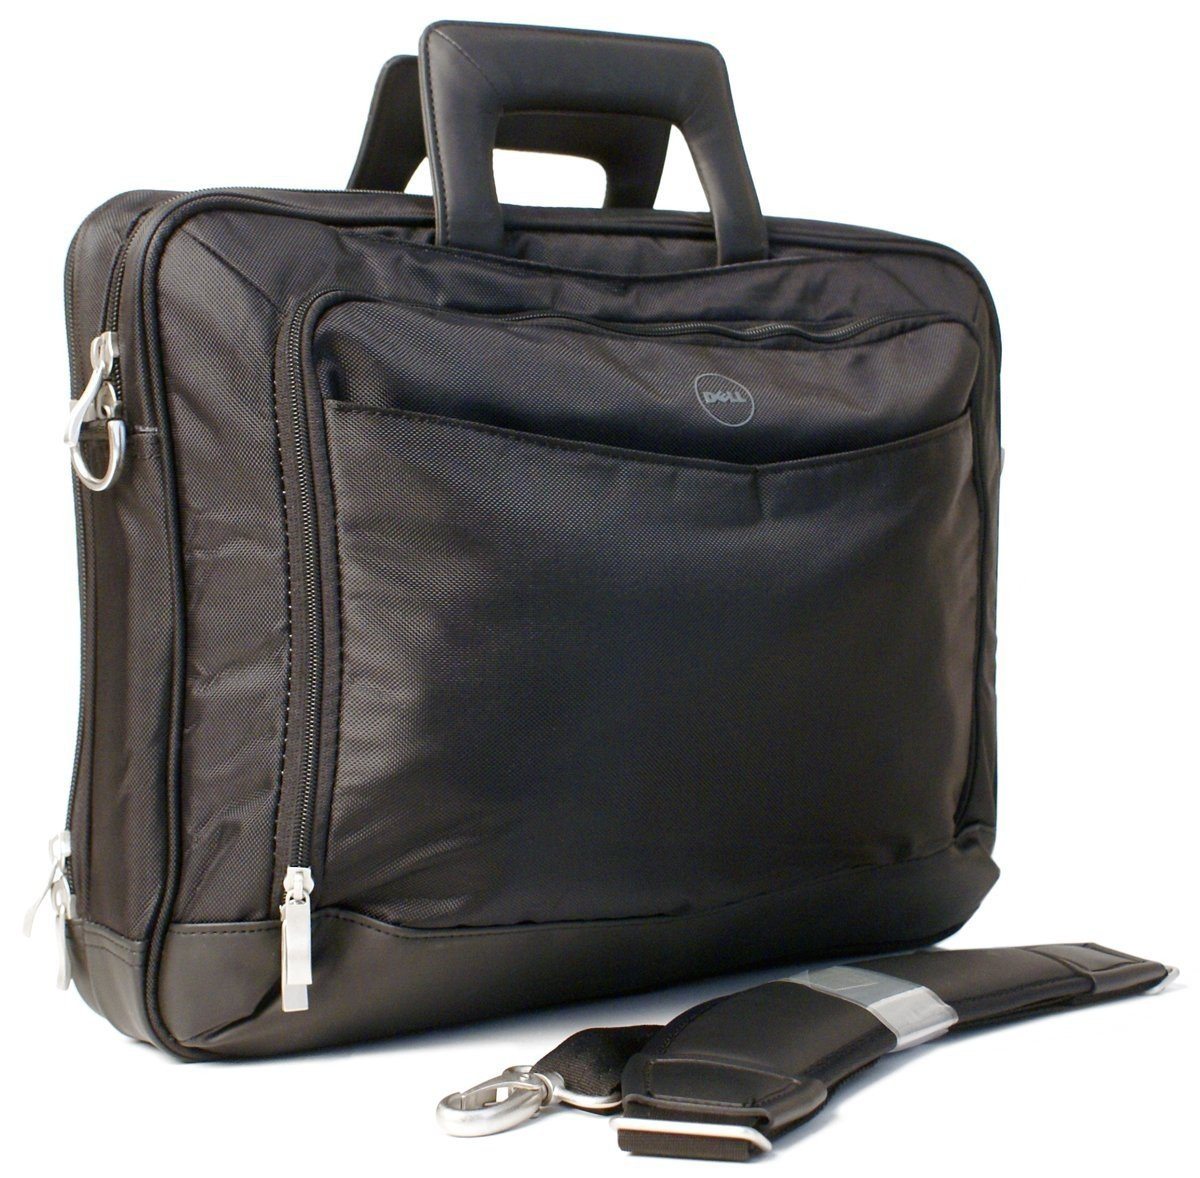 Dell 0XKYW7 Business Laptop Carrying Case Black For 16'' Laptops - XKYW7